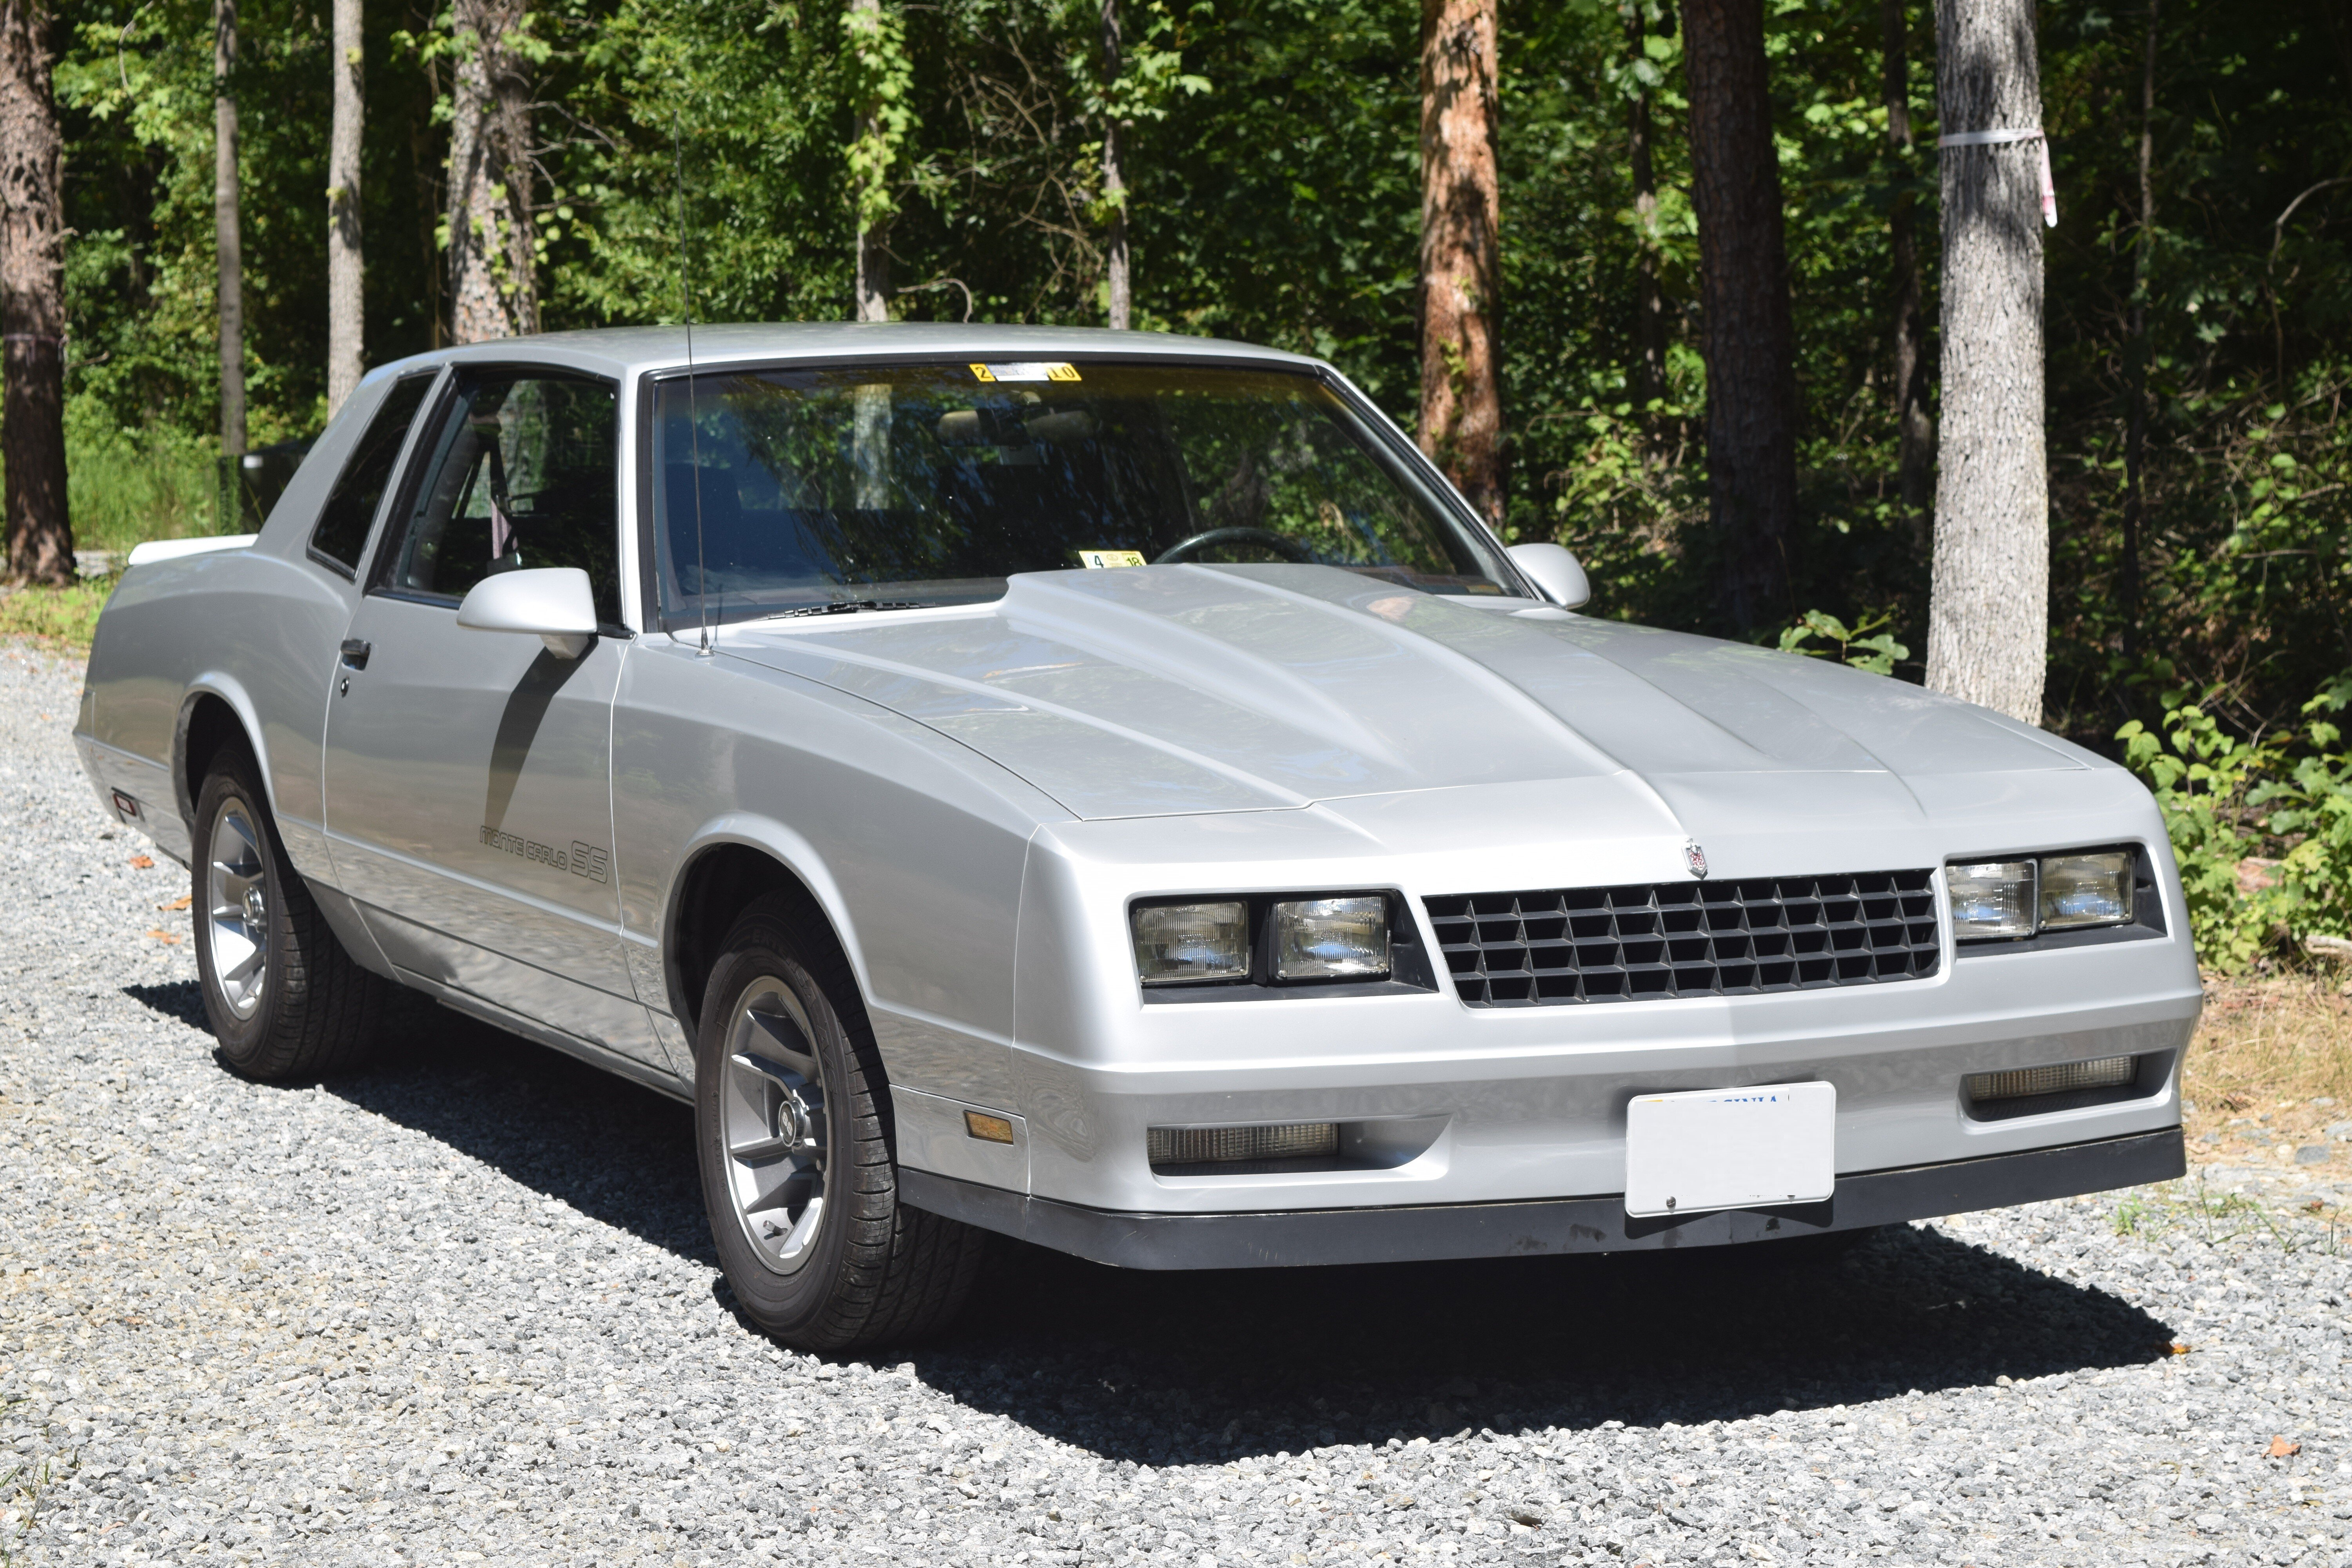 Monte Carlo For Sale Craigslist Simple Img With Monte Carlo For